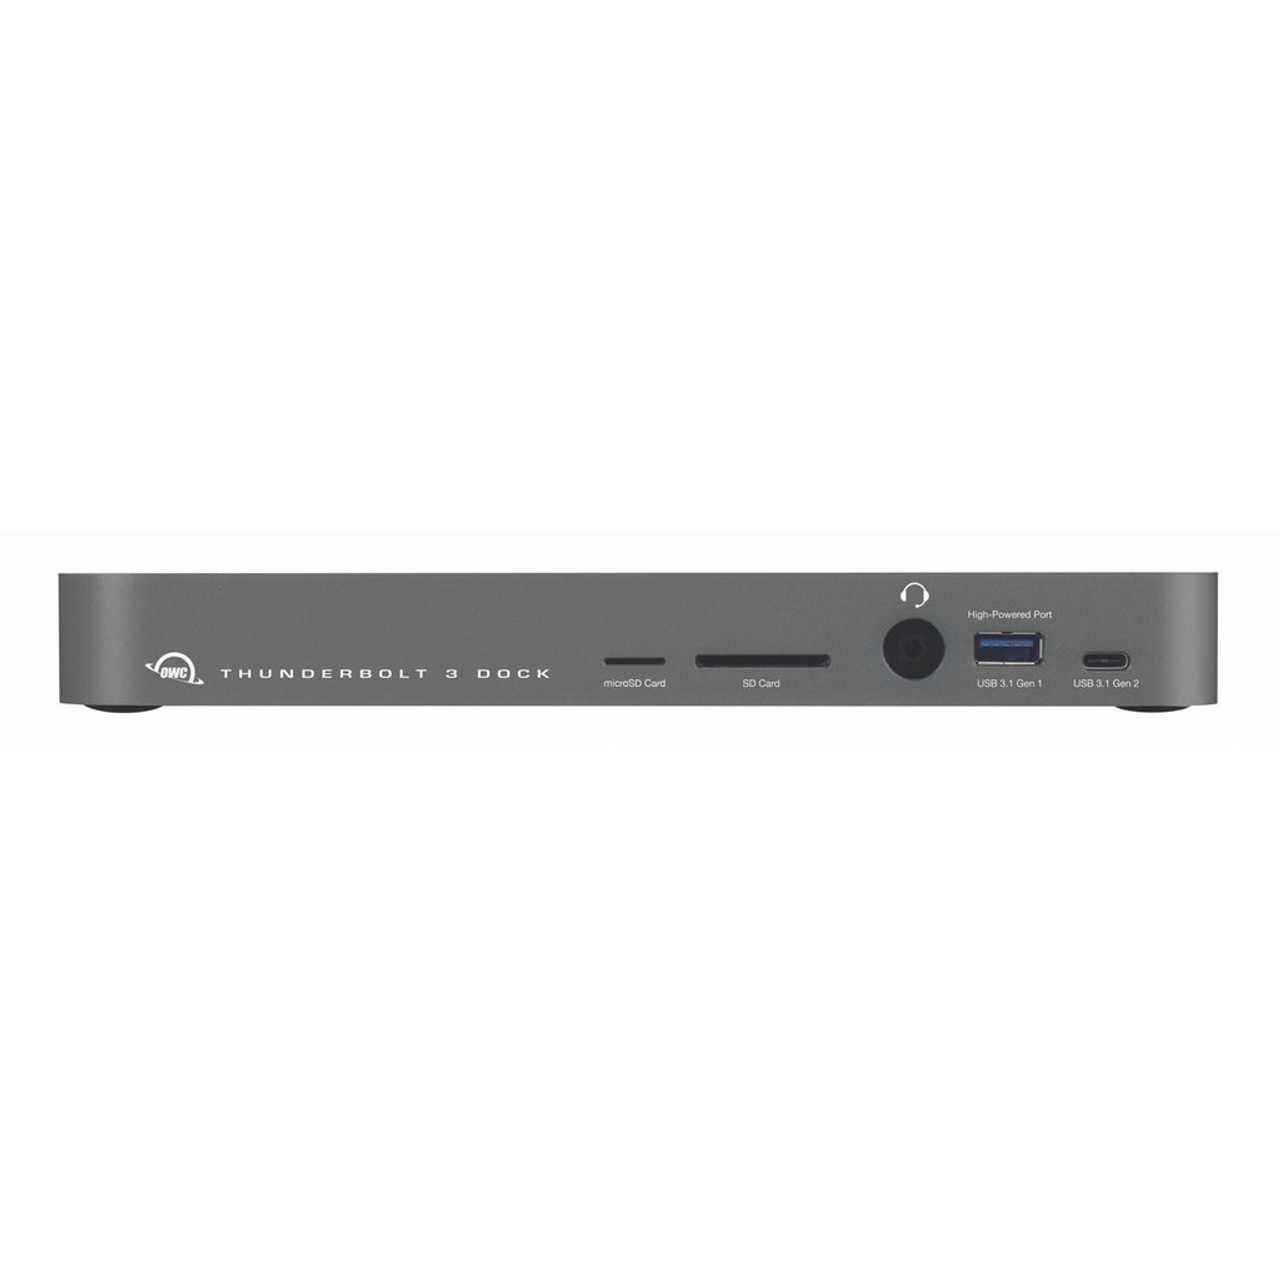 Open Box - OWC 14-Port Thunderbolt 3 Dock with Cable - Space Gray - UK 3 Pin Plug Type G